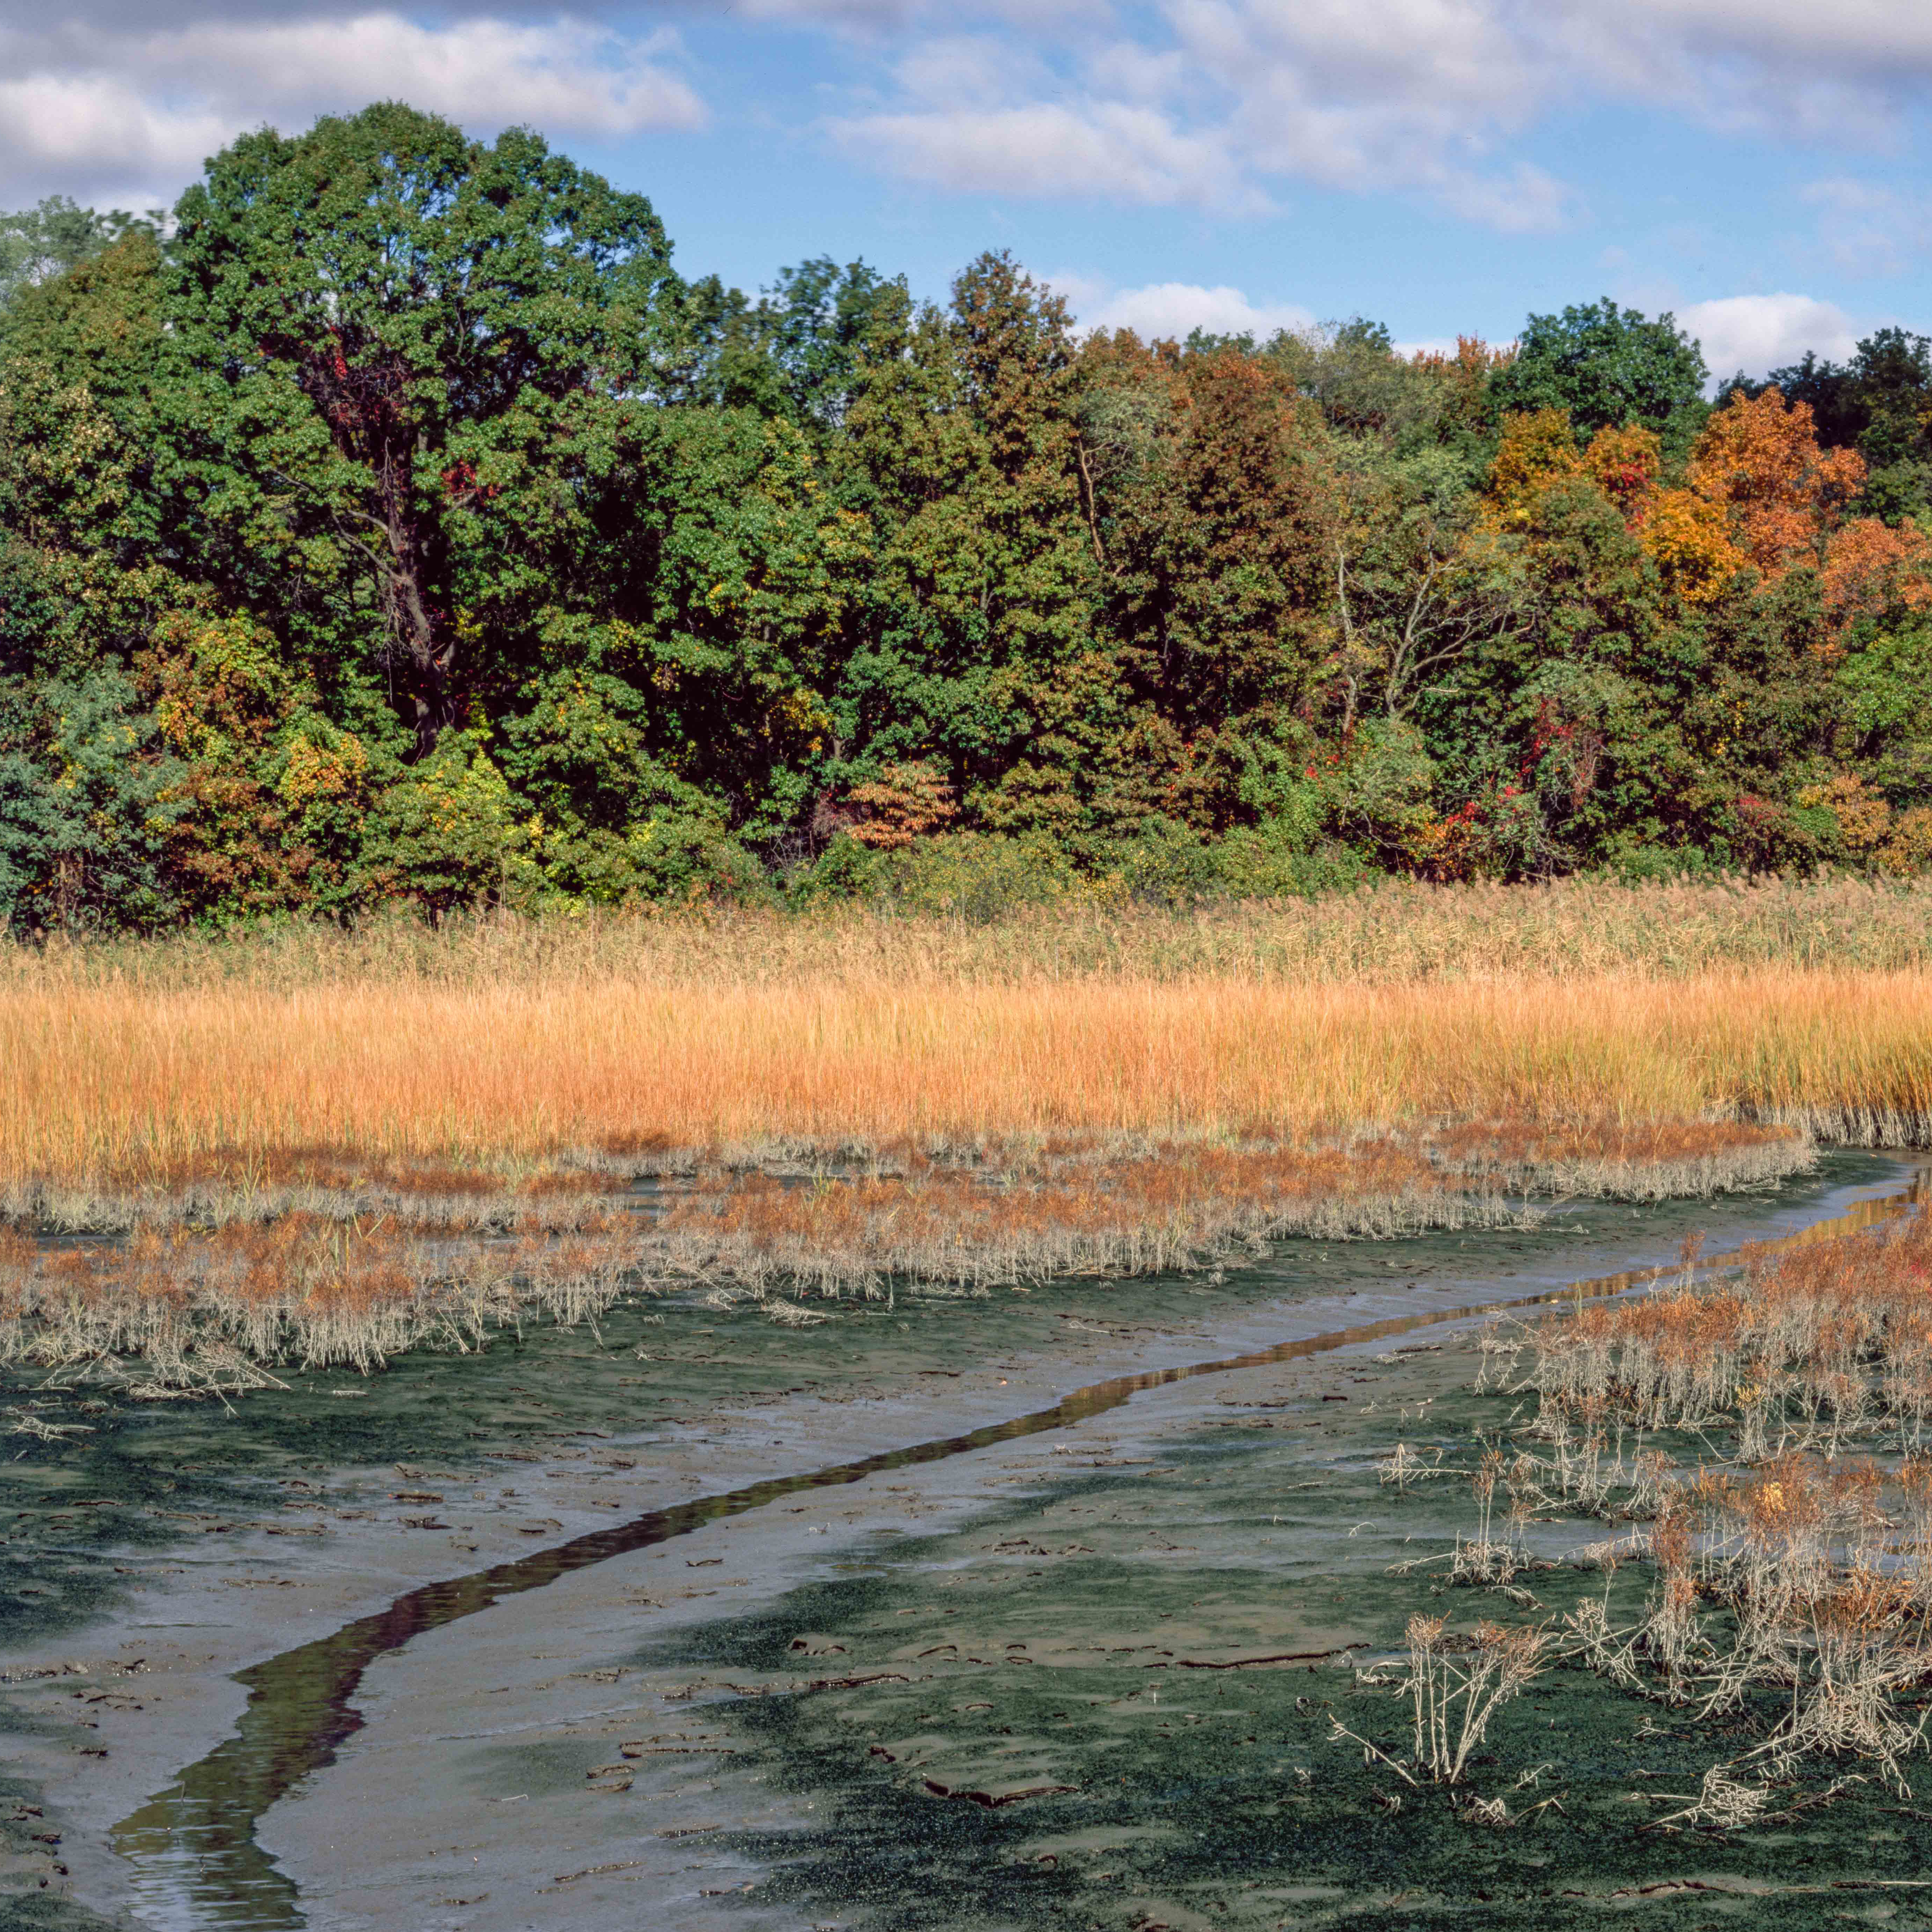 A lowland shot of a swamp marsh.